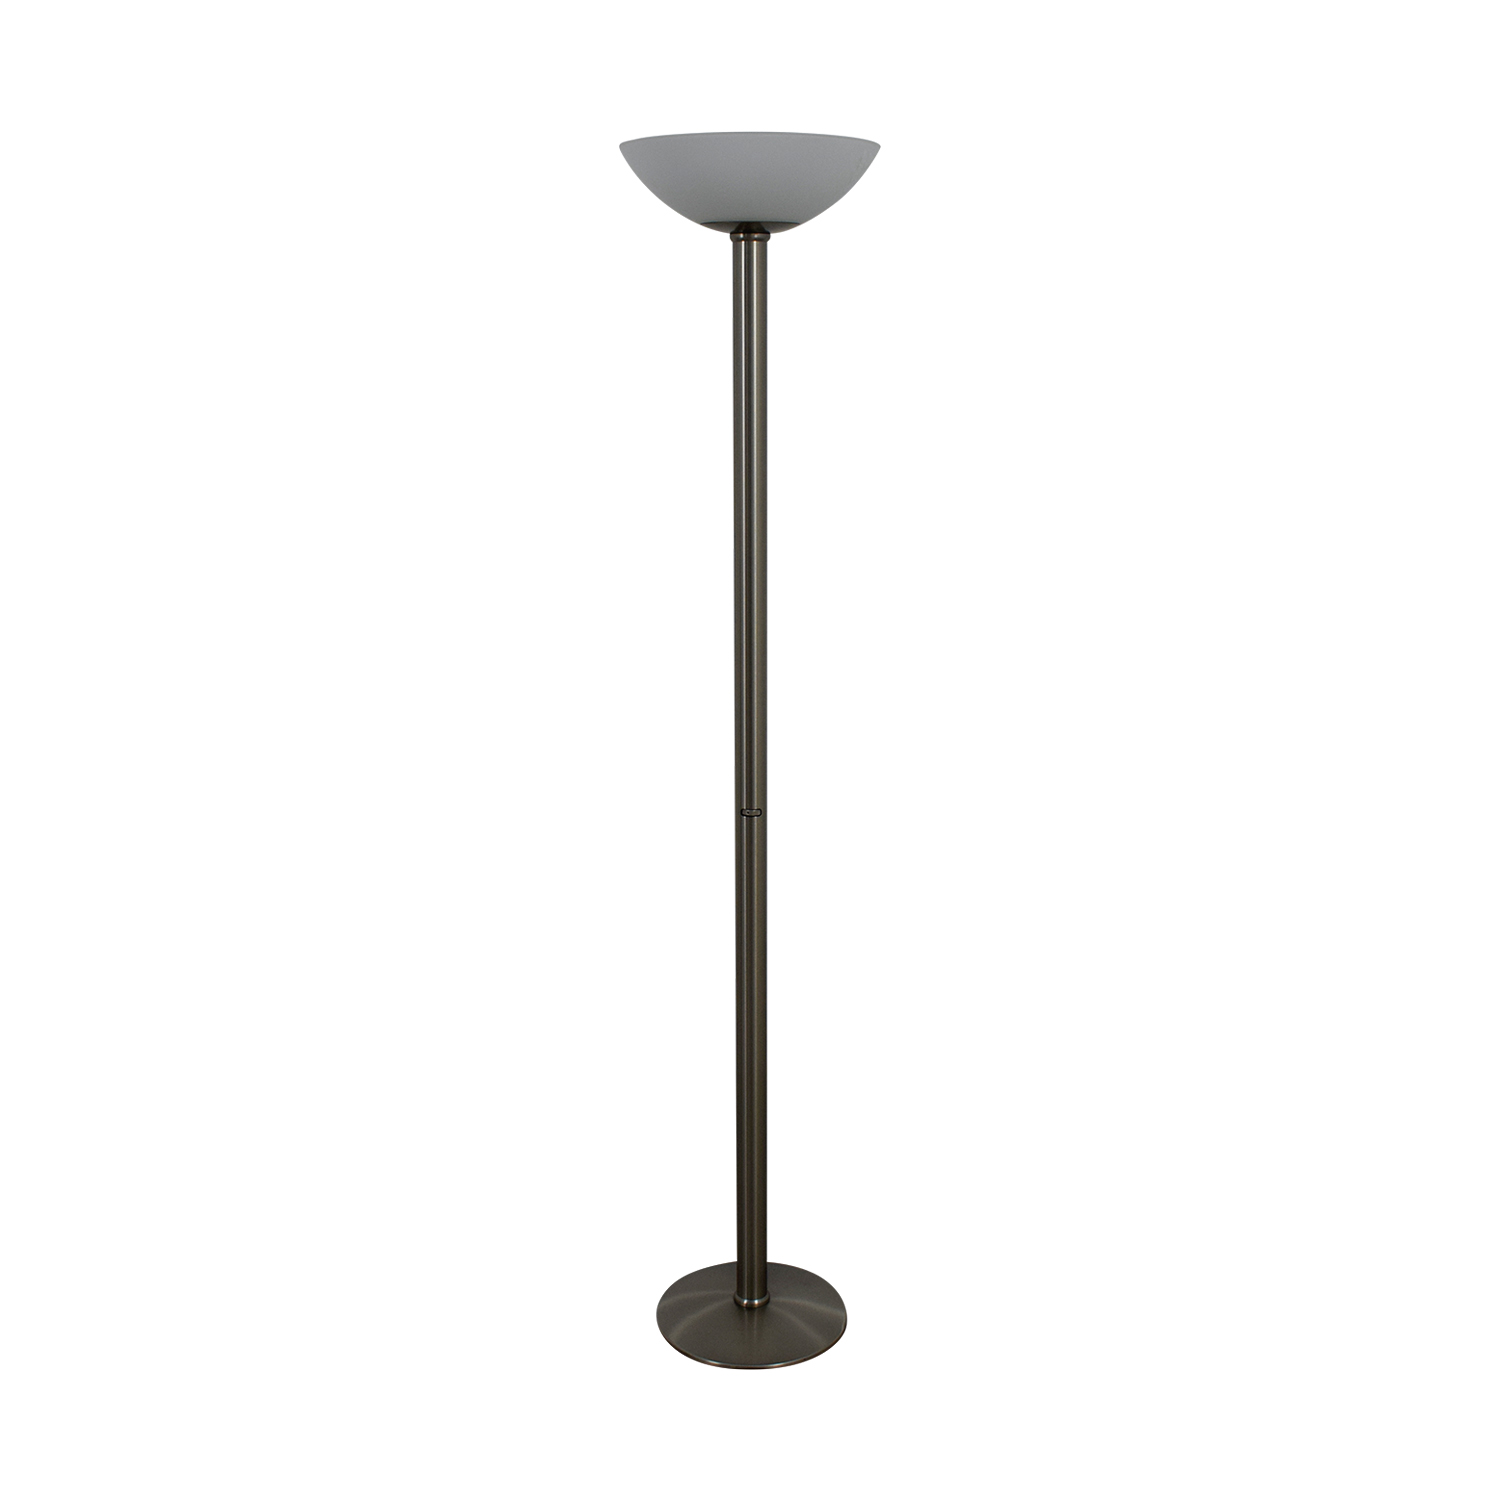 Holtkotter Lighting 2573 Satin Nickel Torcherie Floor Lamp / Lamps